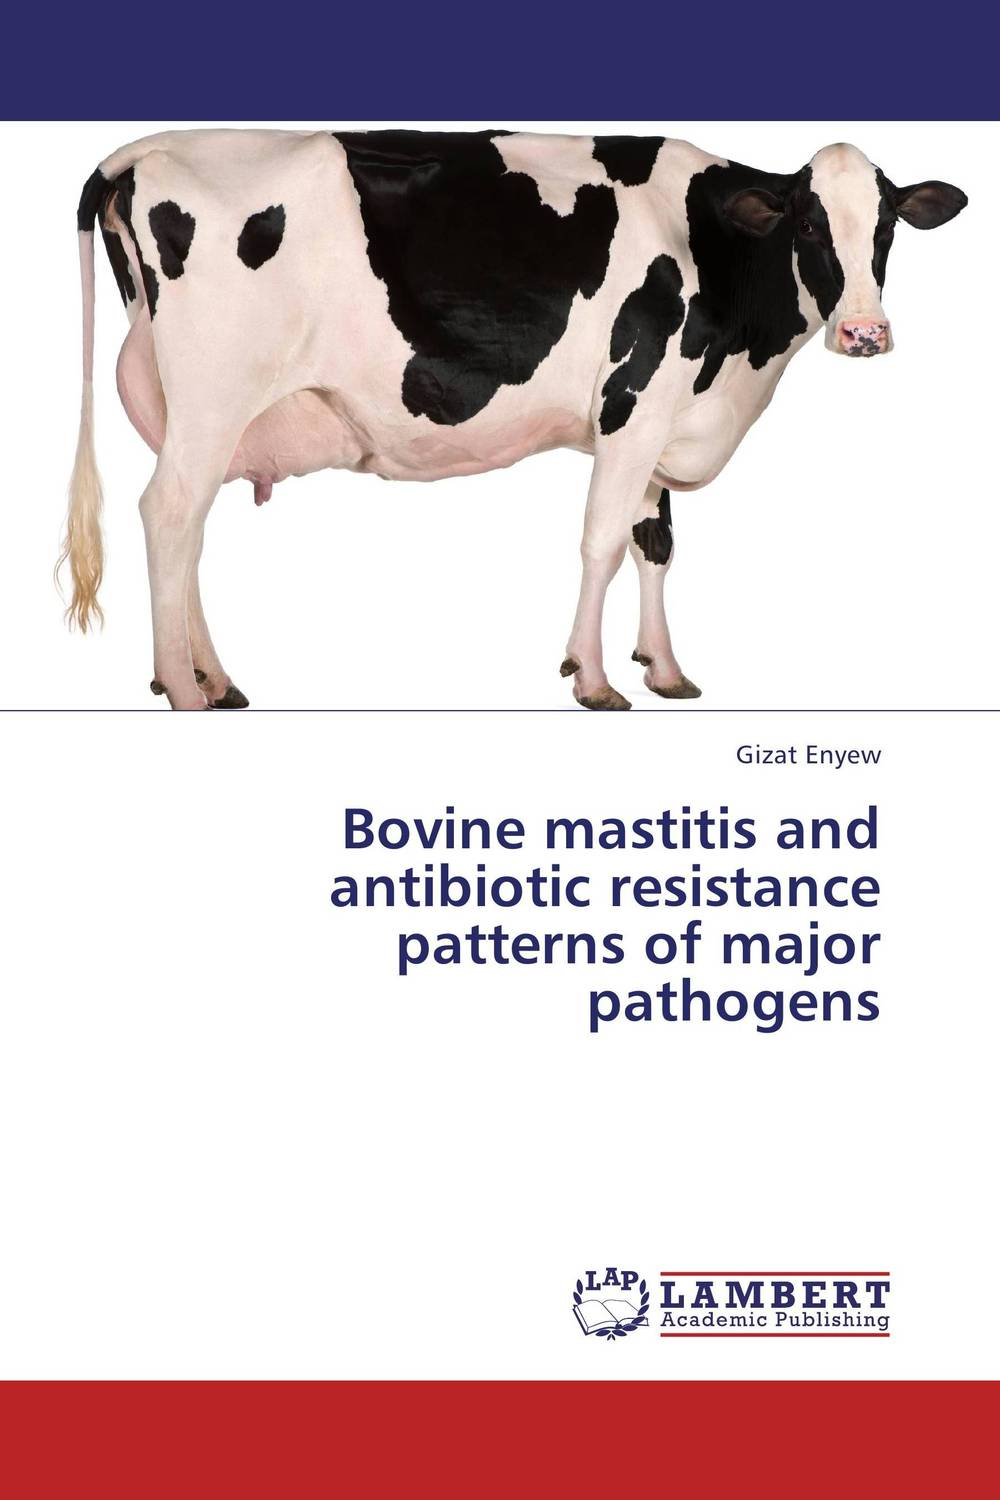 Bovine mastitis and antibiotic resistance patterns of major pathogens the major plays